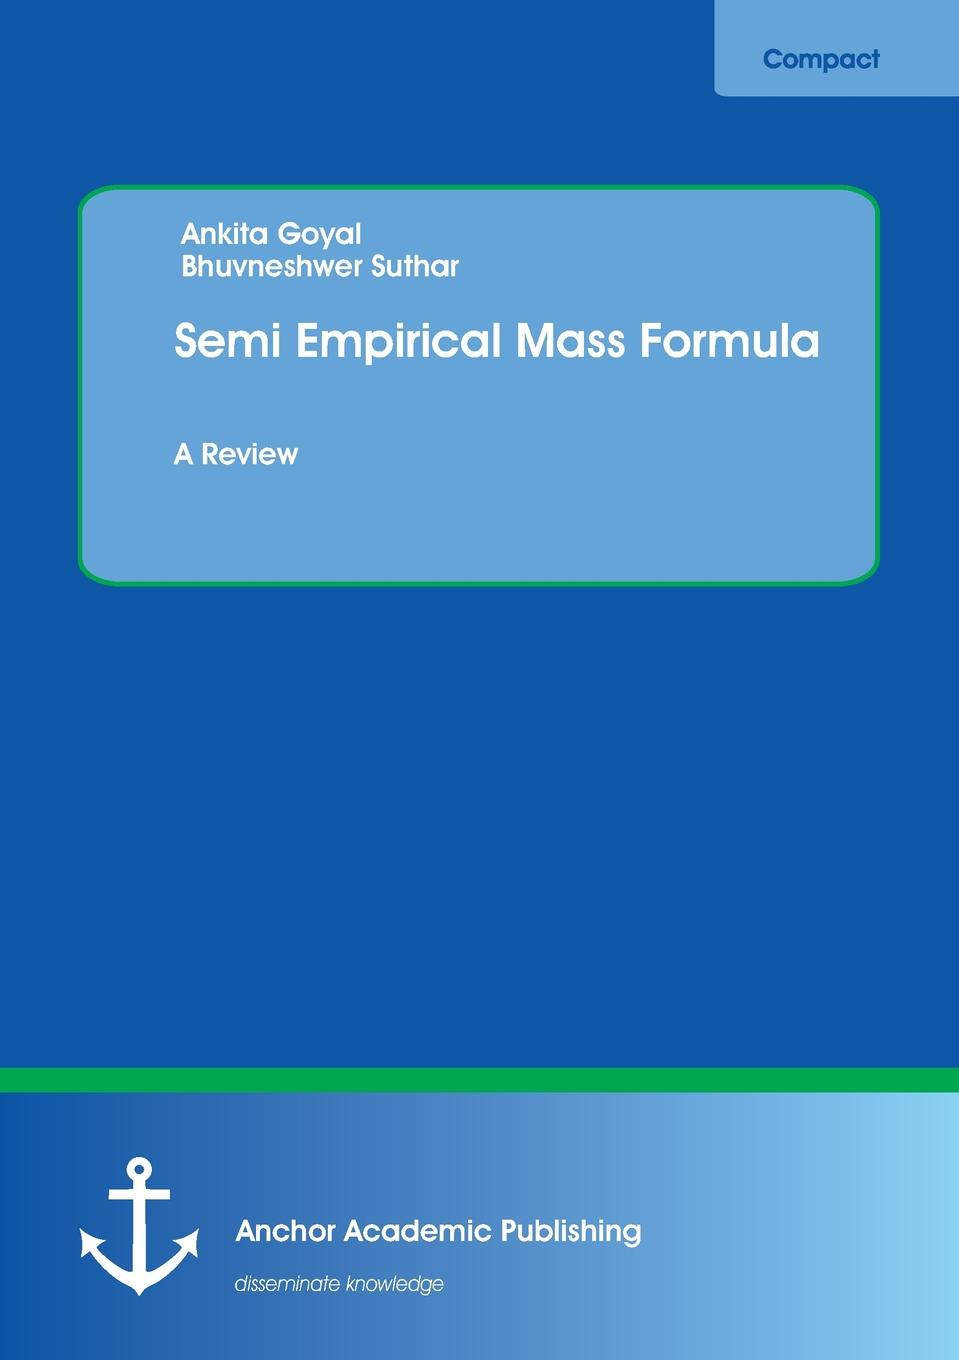 Ankita Goyal, Bhuvneshwer Suthar Semi Empirical Mass Formula w heisenberg nuclear physics